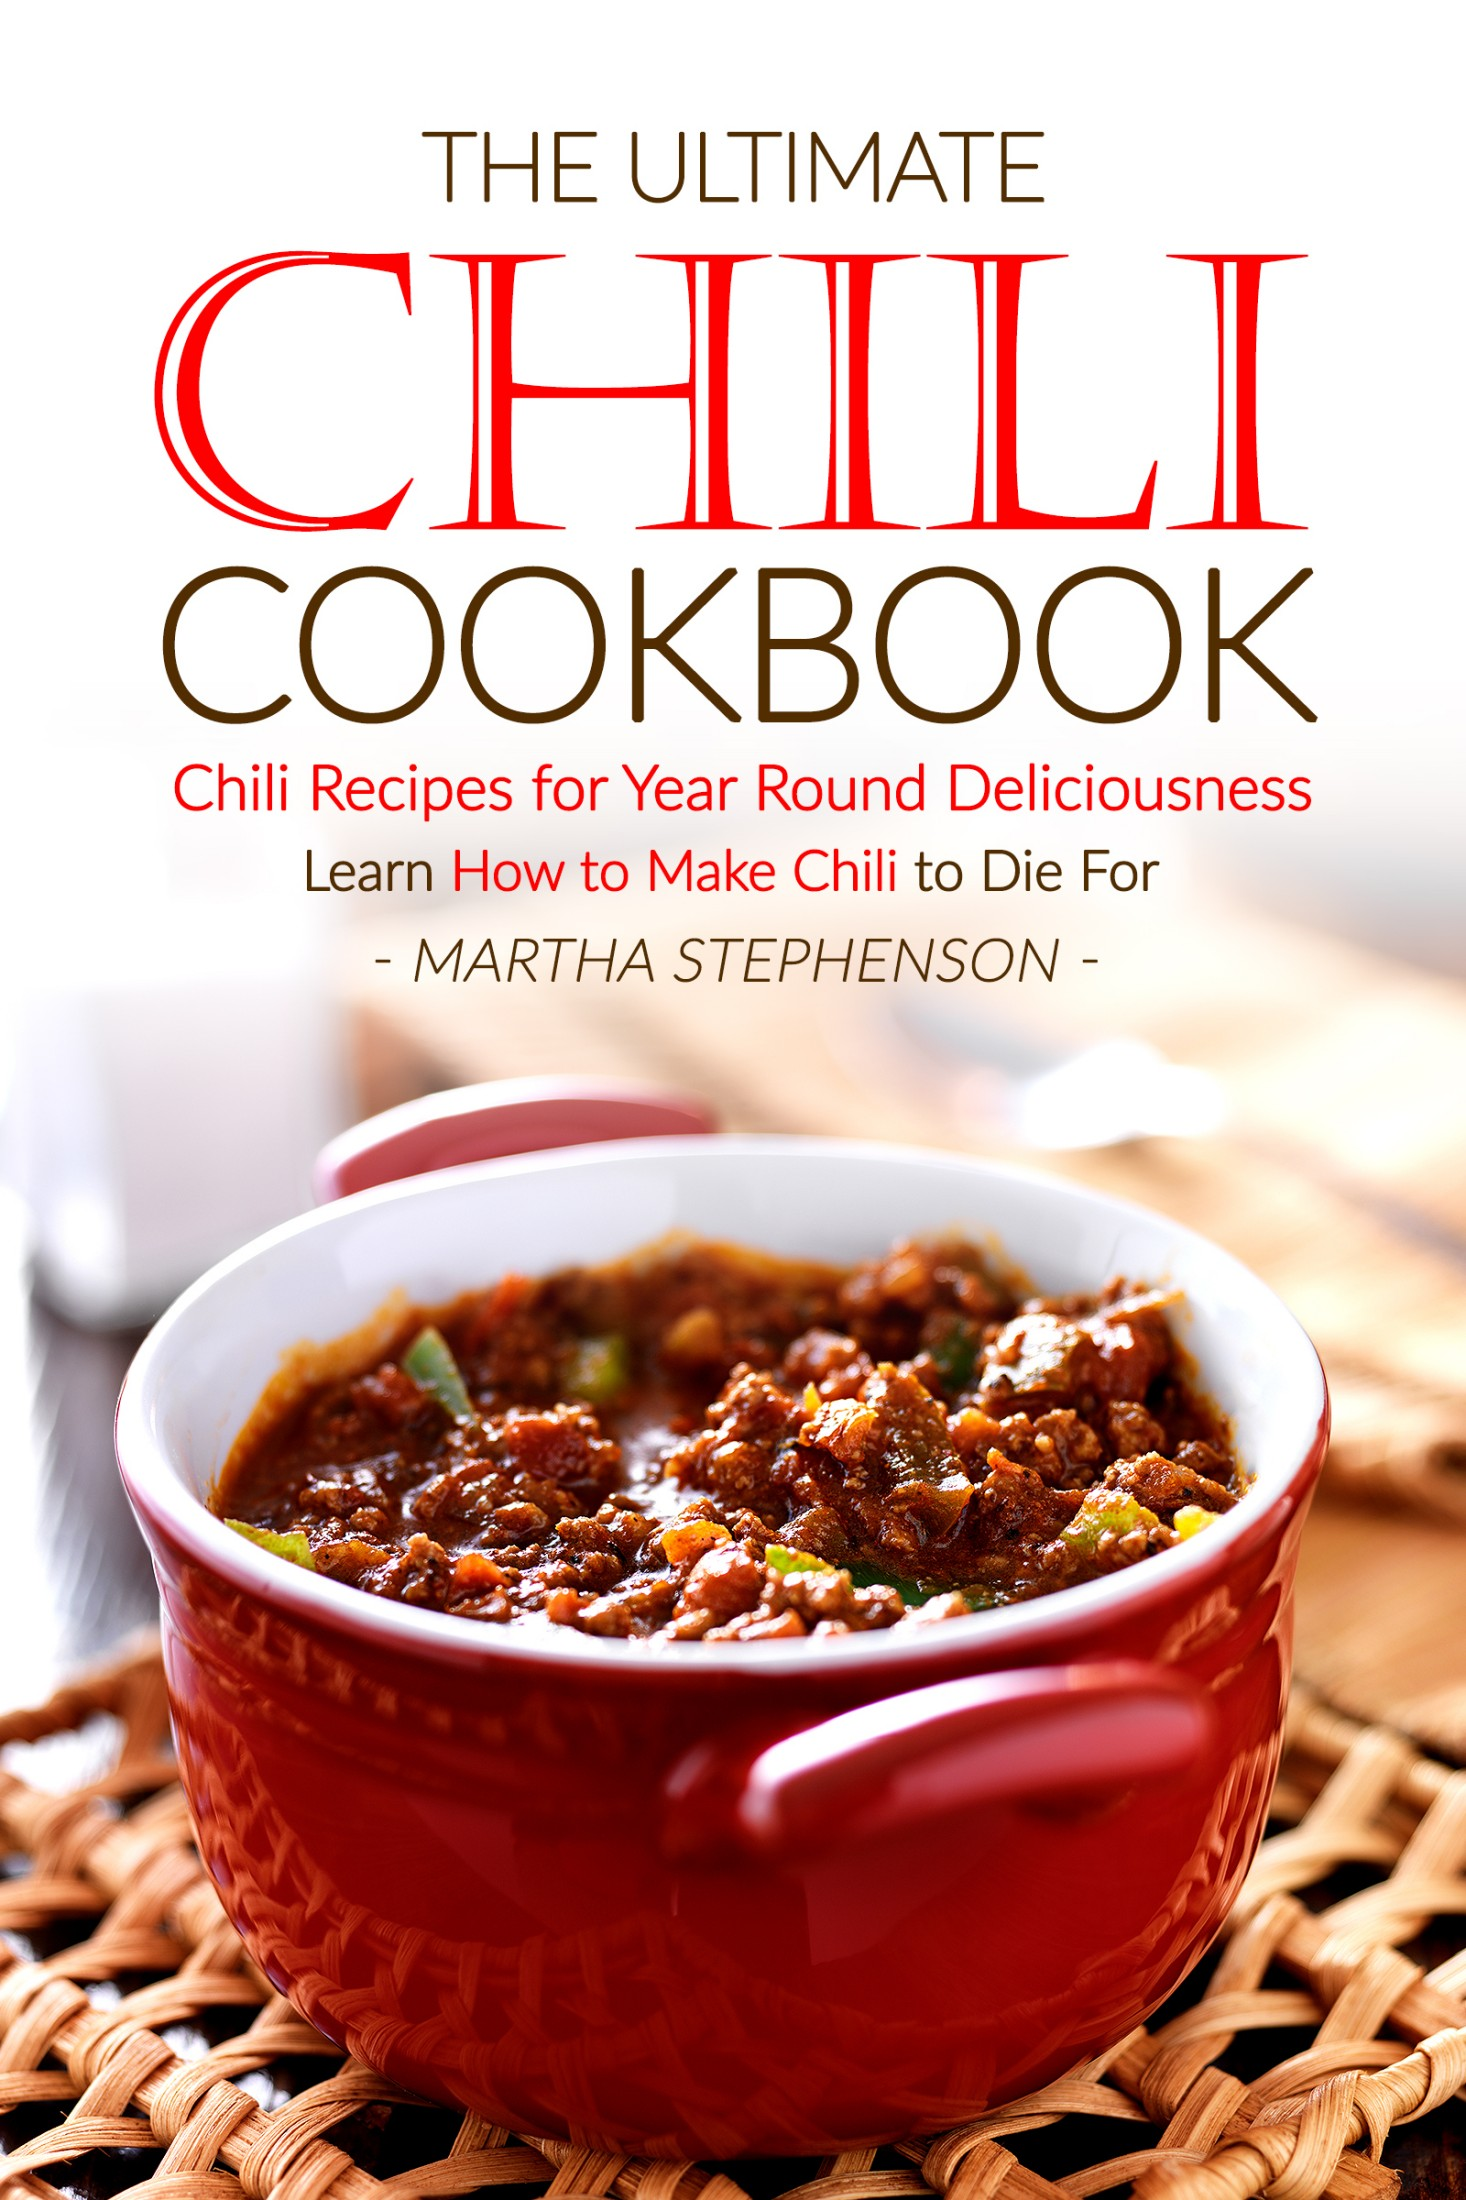 Smashwords The Ultimate Chili Cookbook Chili Recipes For Year Round Deliciousness A Book By Martha Stephenson